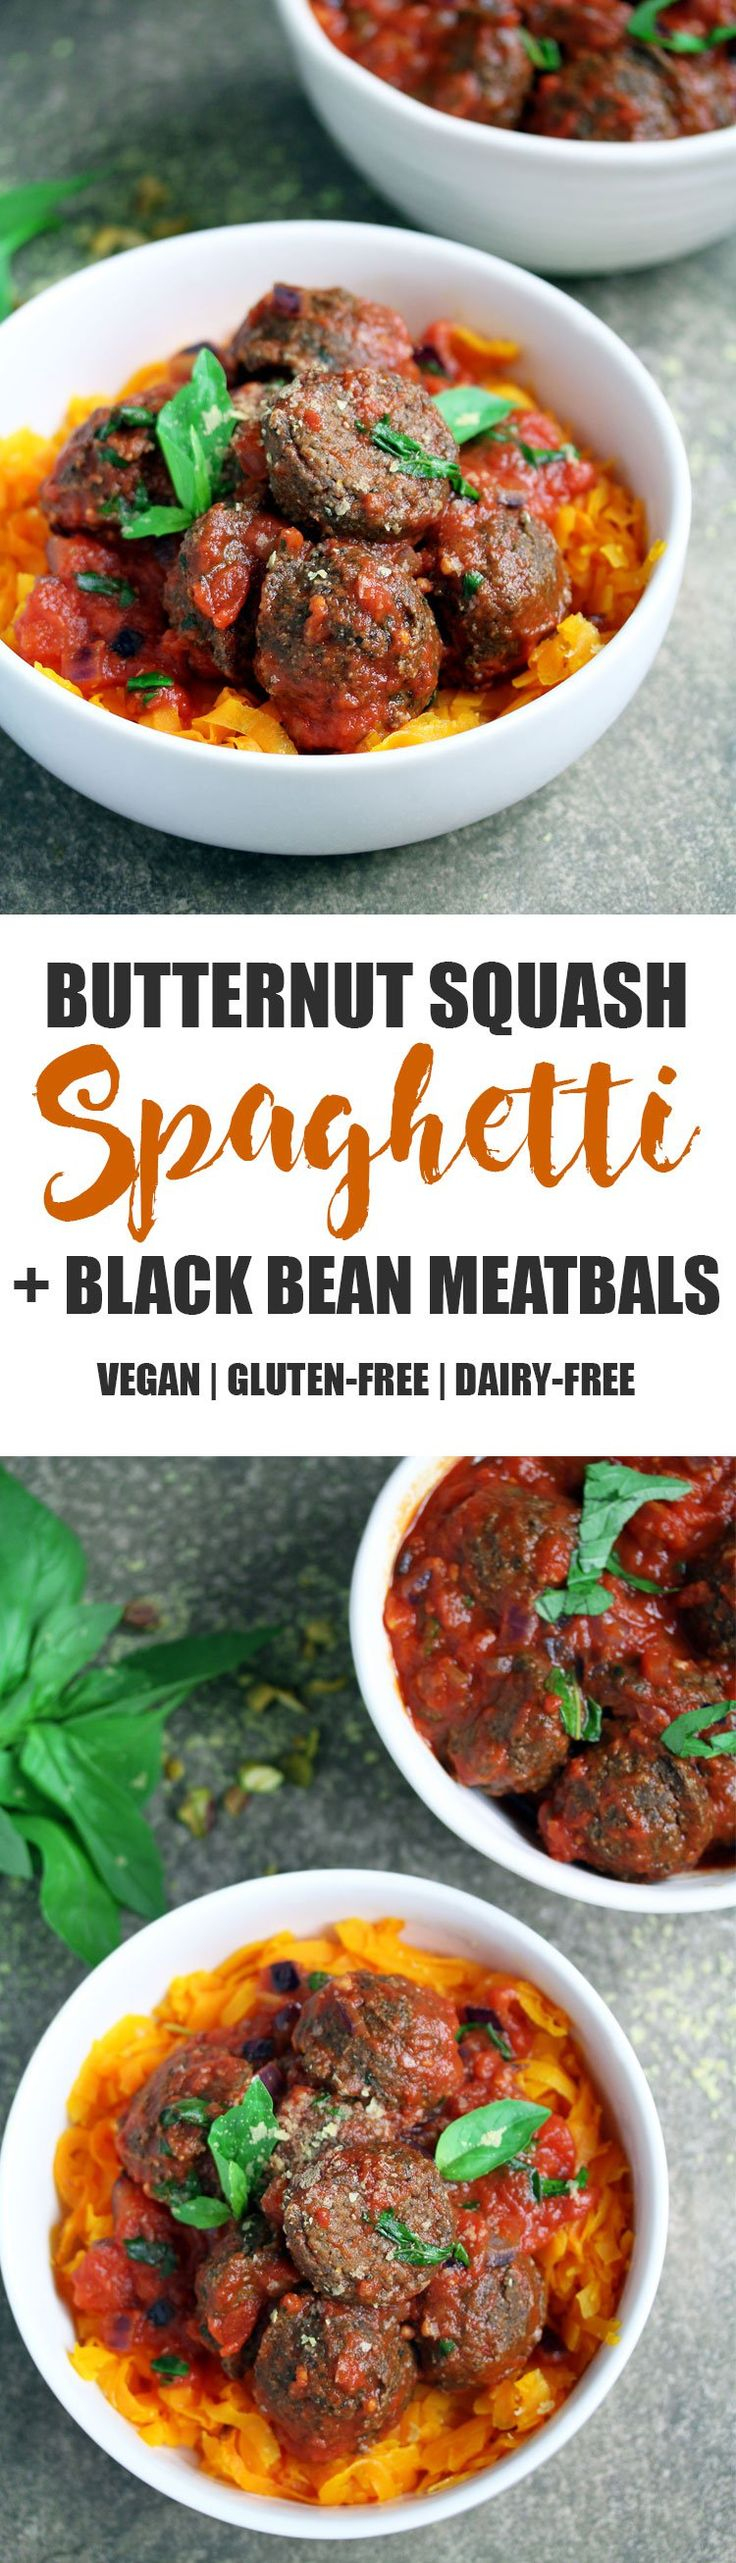 Butternut Squash Spaghetti with Black Bean 'Meatballs' To me nothingsays comfort like a nice big plate of pasta, especially spaghetti with a tomato sauce - yum! It's one of those meals you can always turn…